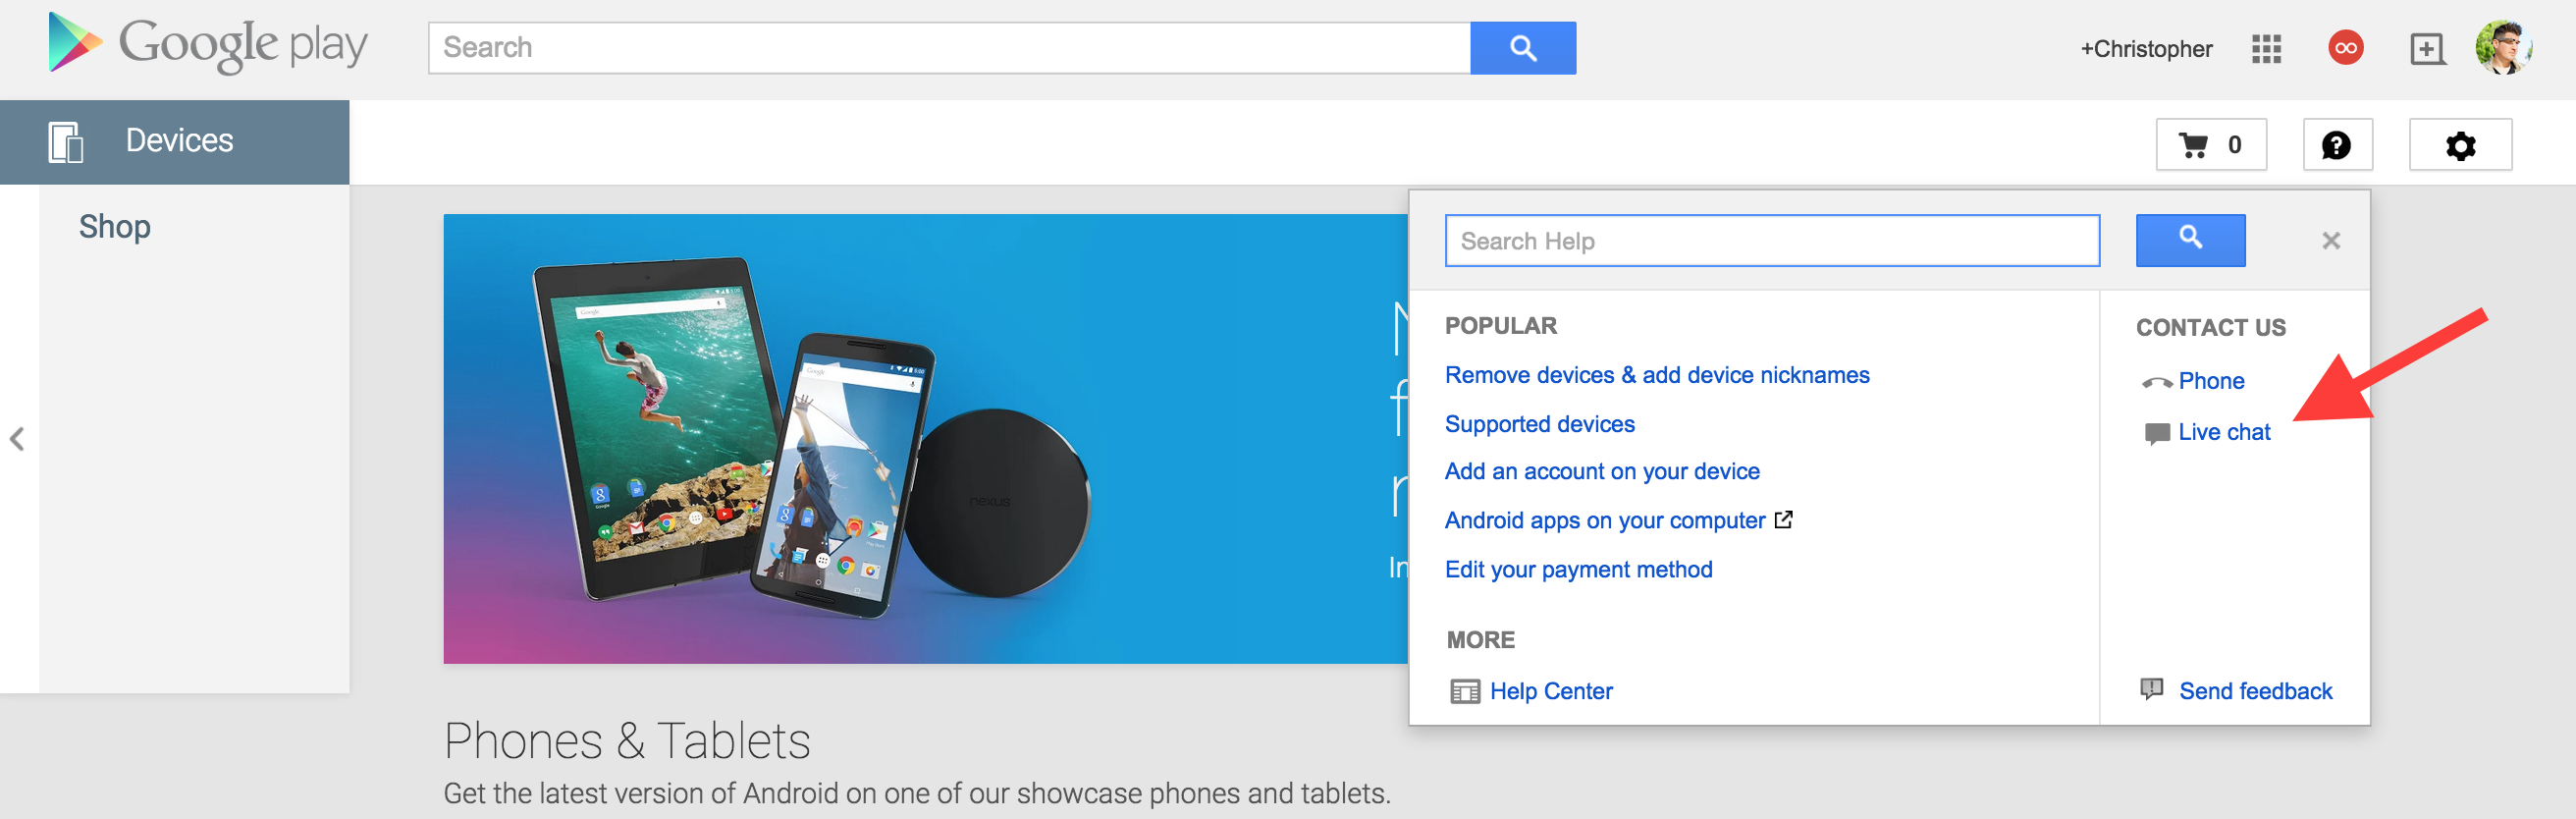 Google chat help  Google 'Chat': Everything you need to know